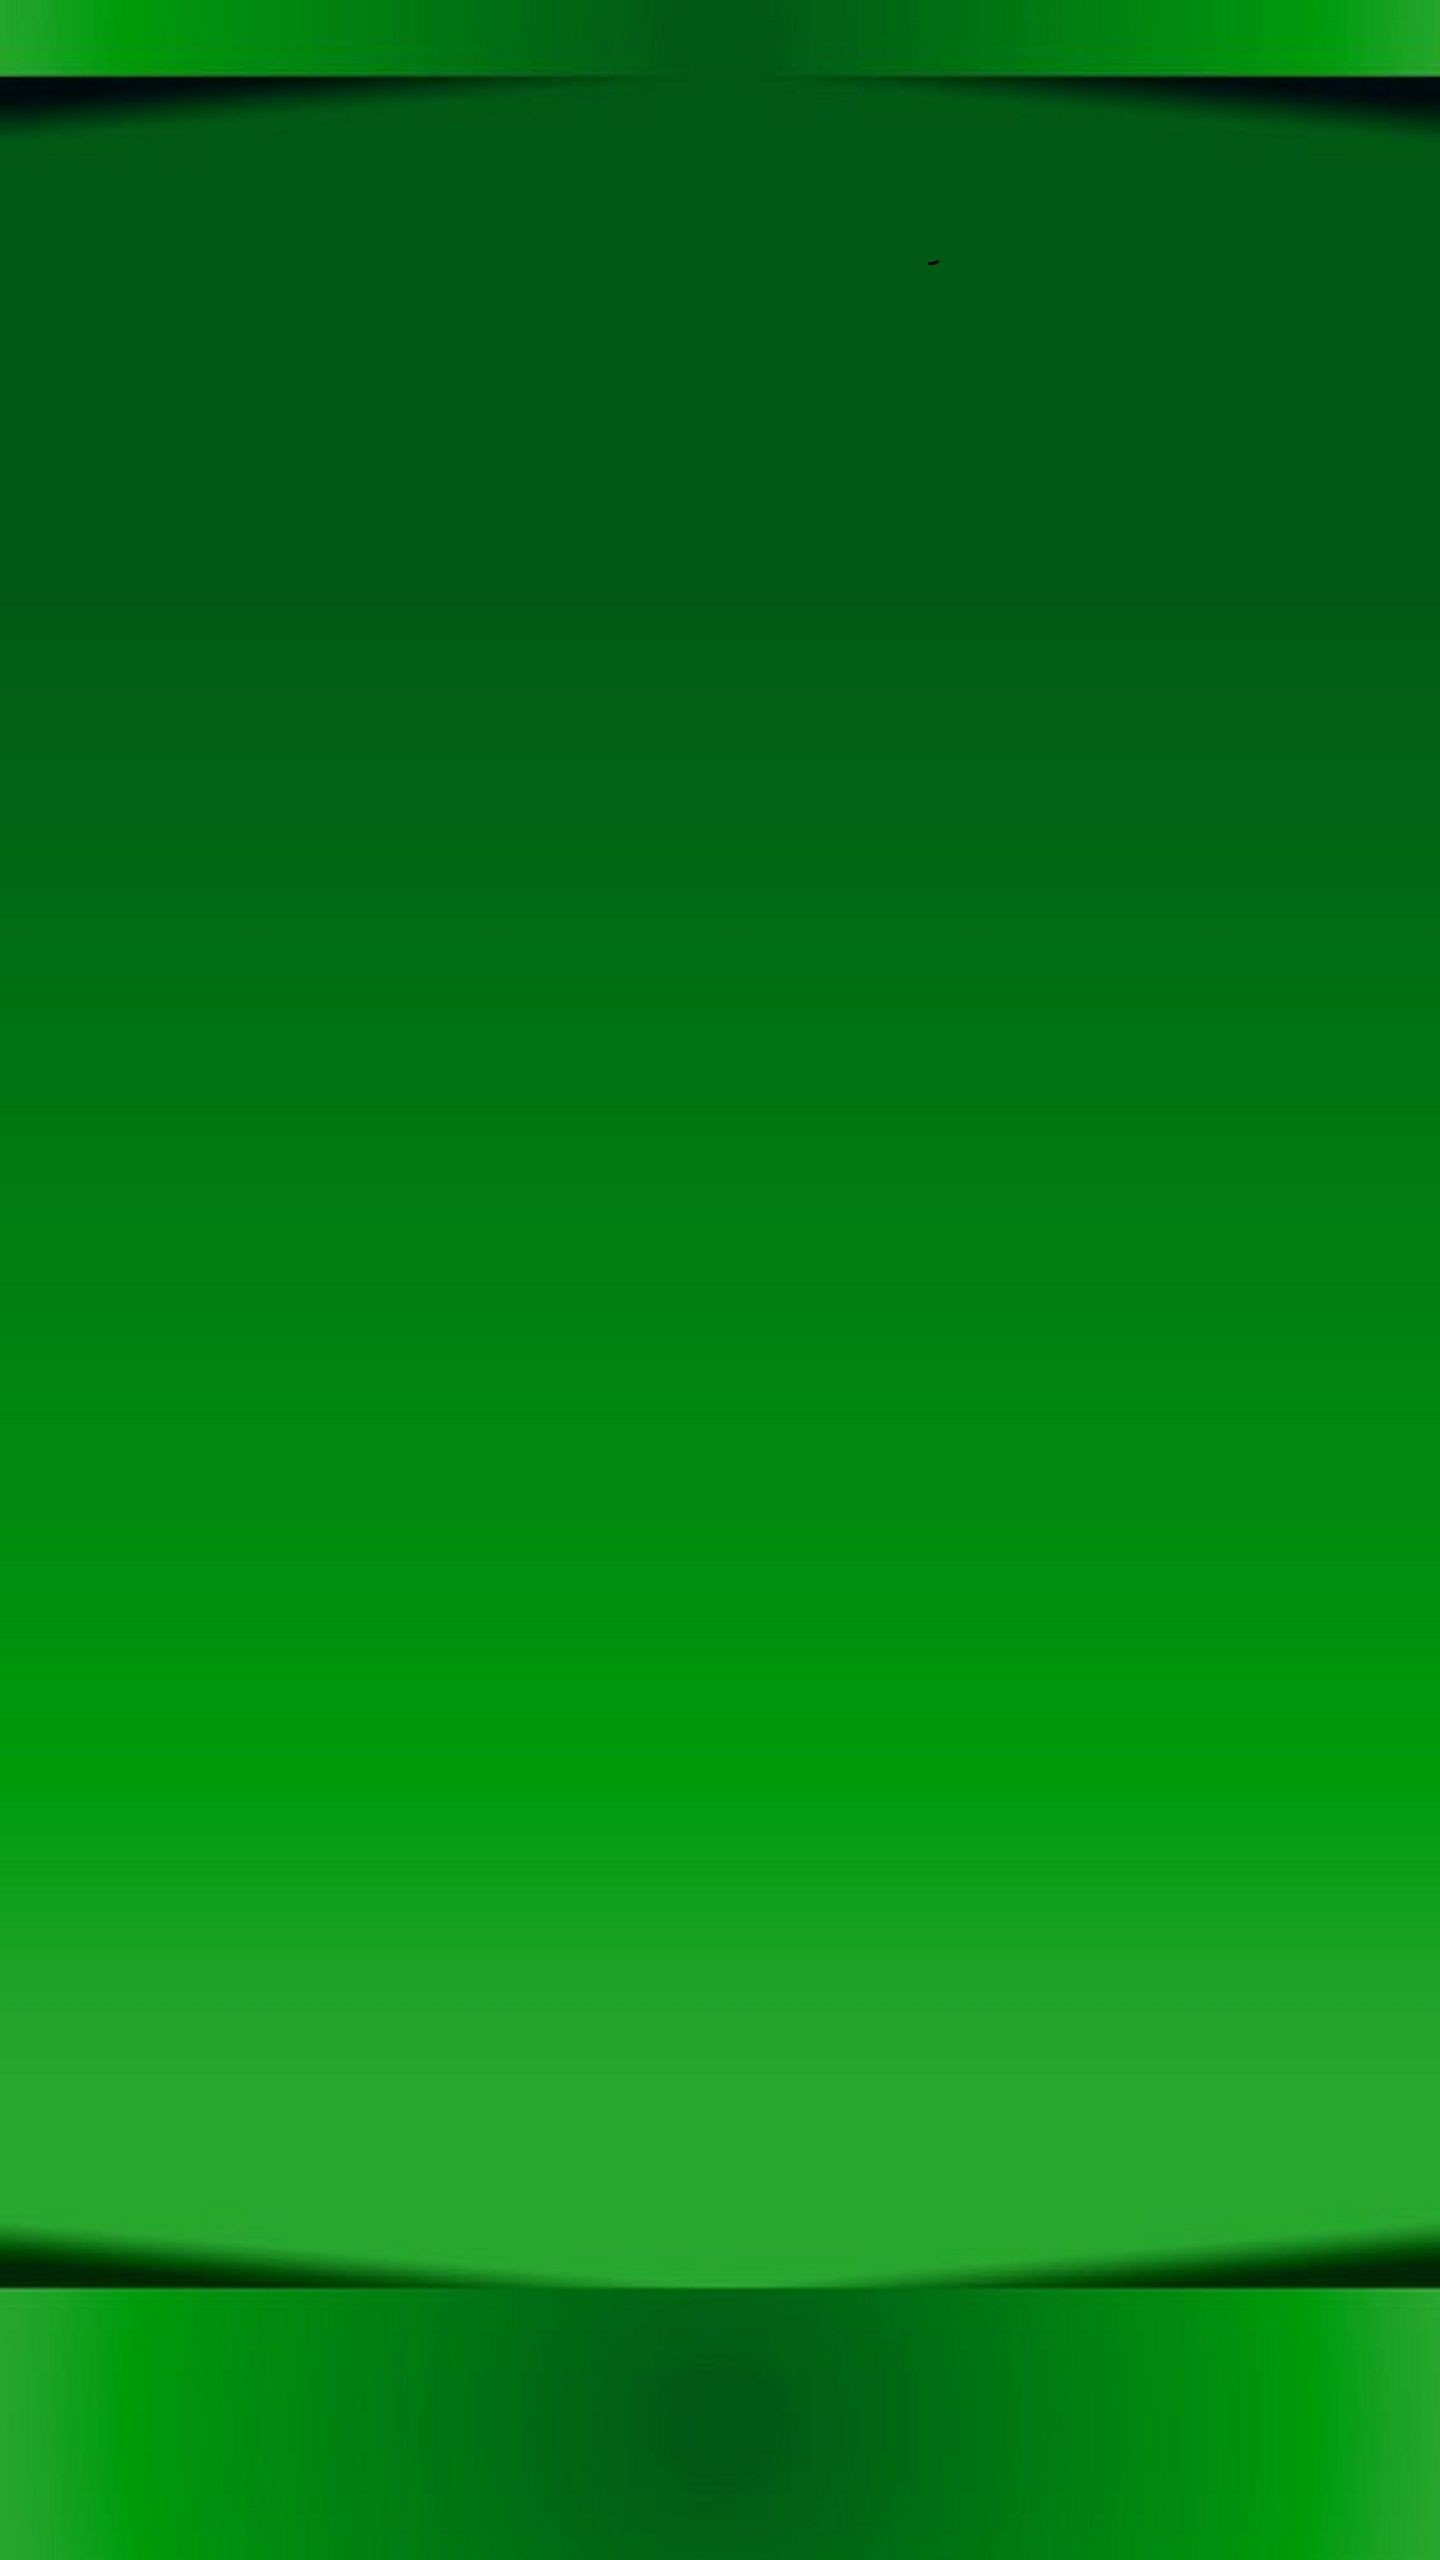 1440x2560 Green Backgrounds, Wallpaper Backgrounds, Wallpaper Patterns, Bright Green,  Green Colors, Wallpapers